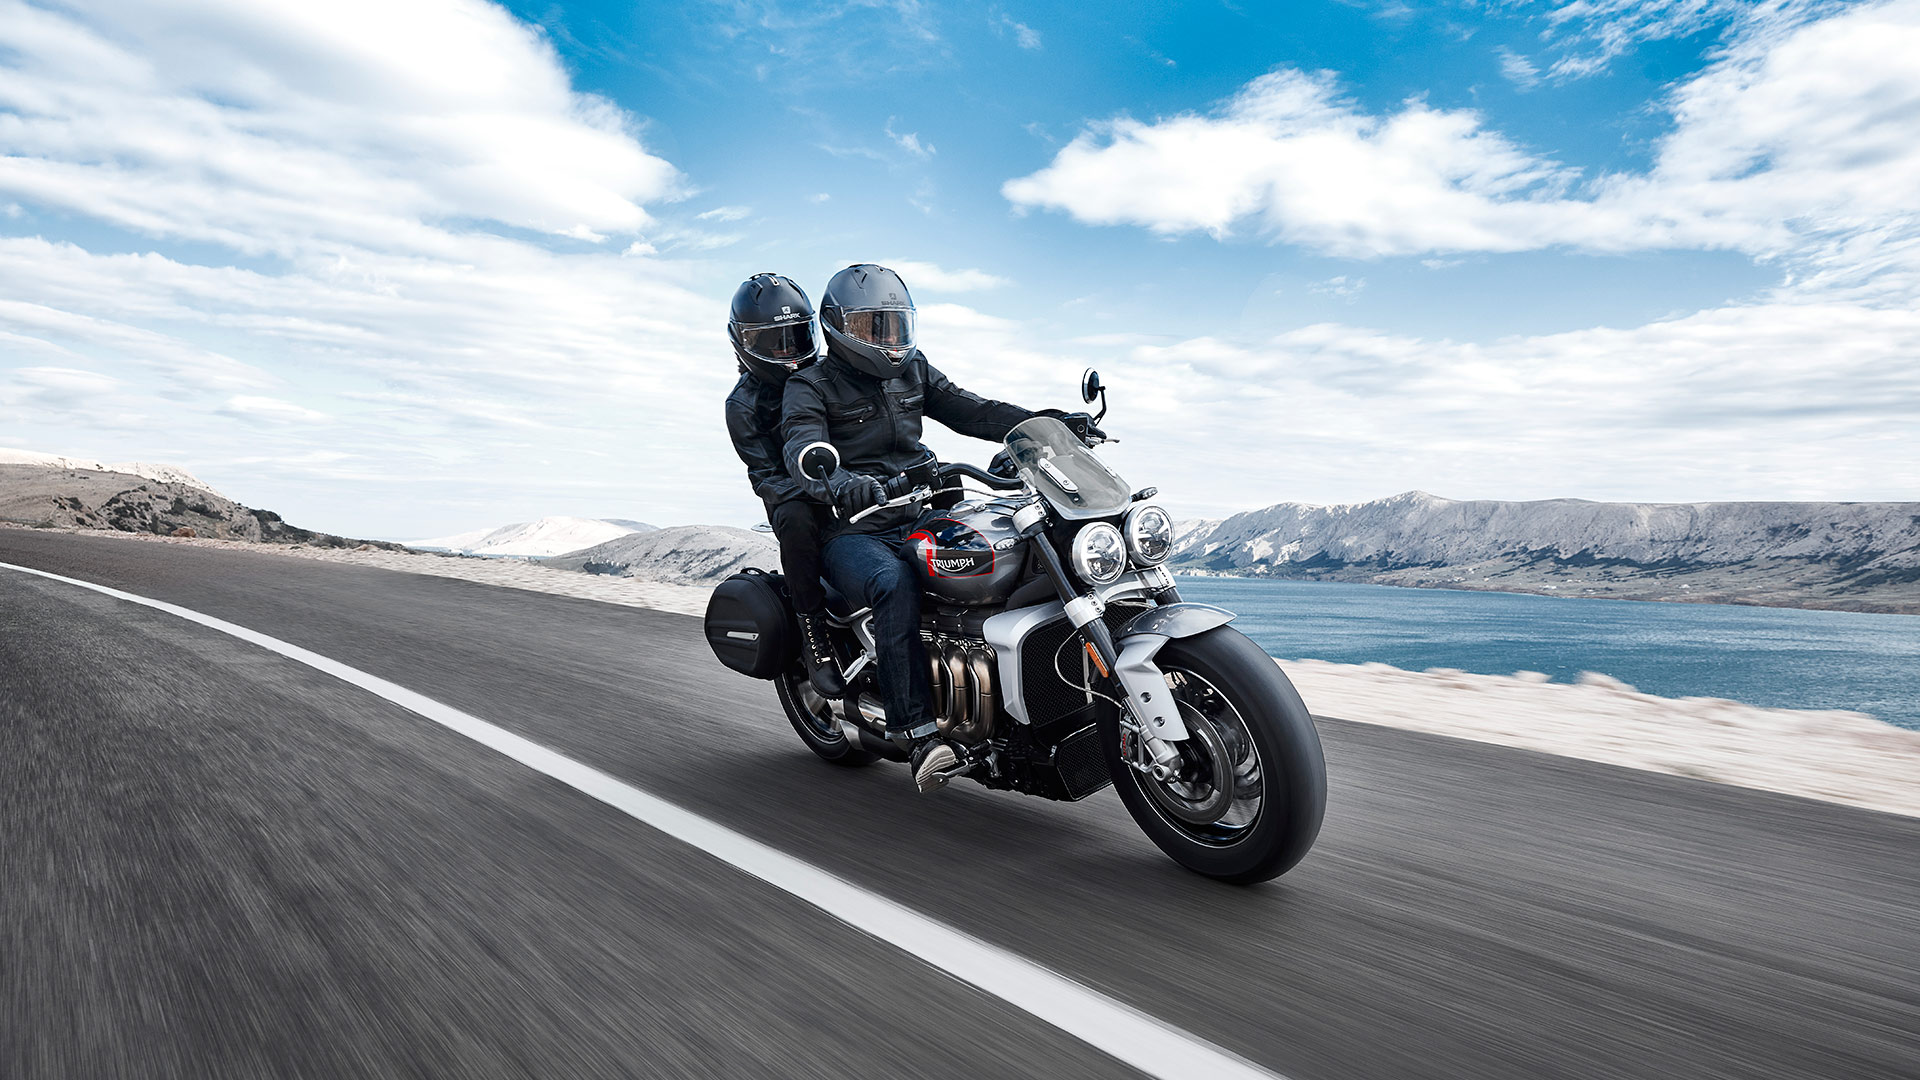 Triumph Rocket 3 GT in aluminium silver and storm grey, fitted with accessories including; black sports pannier with Triumph badging and screen, travelling along a straight road